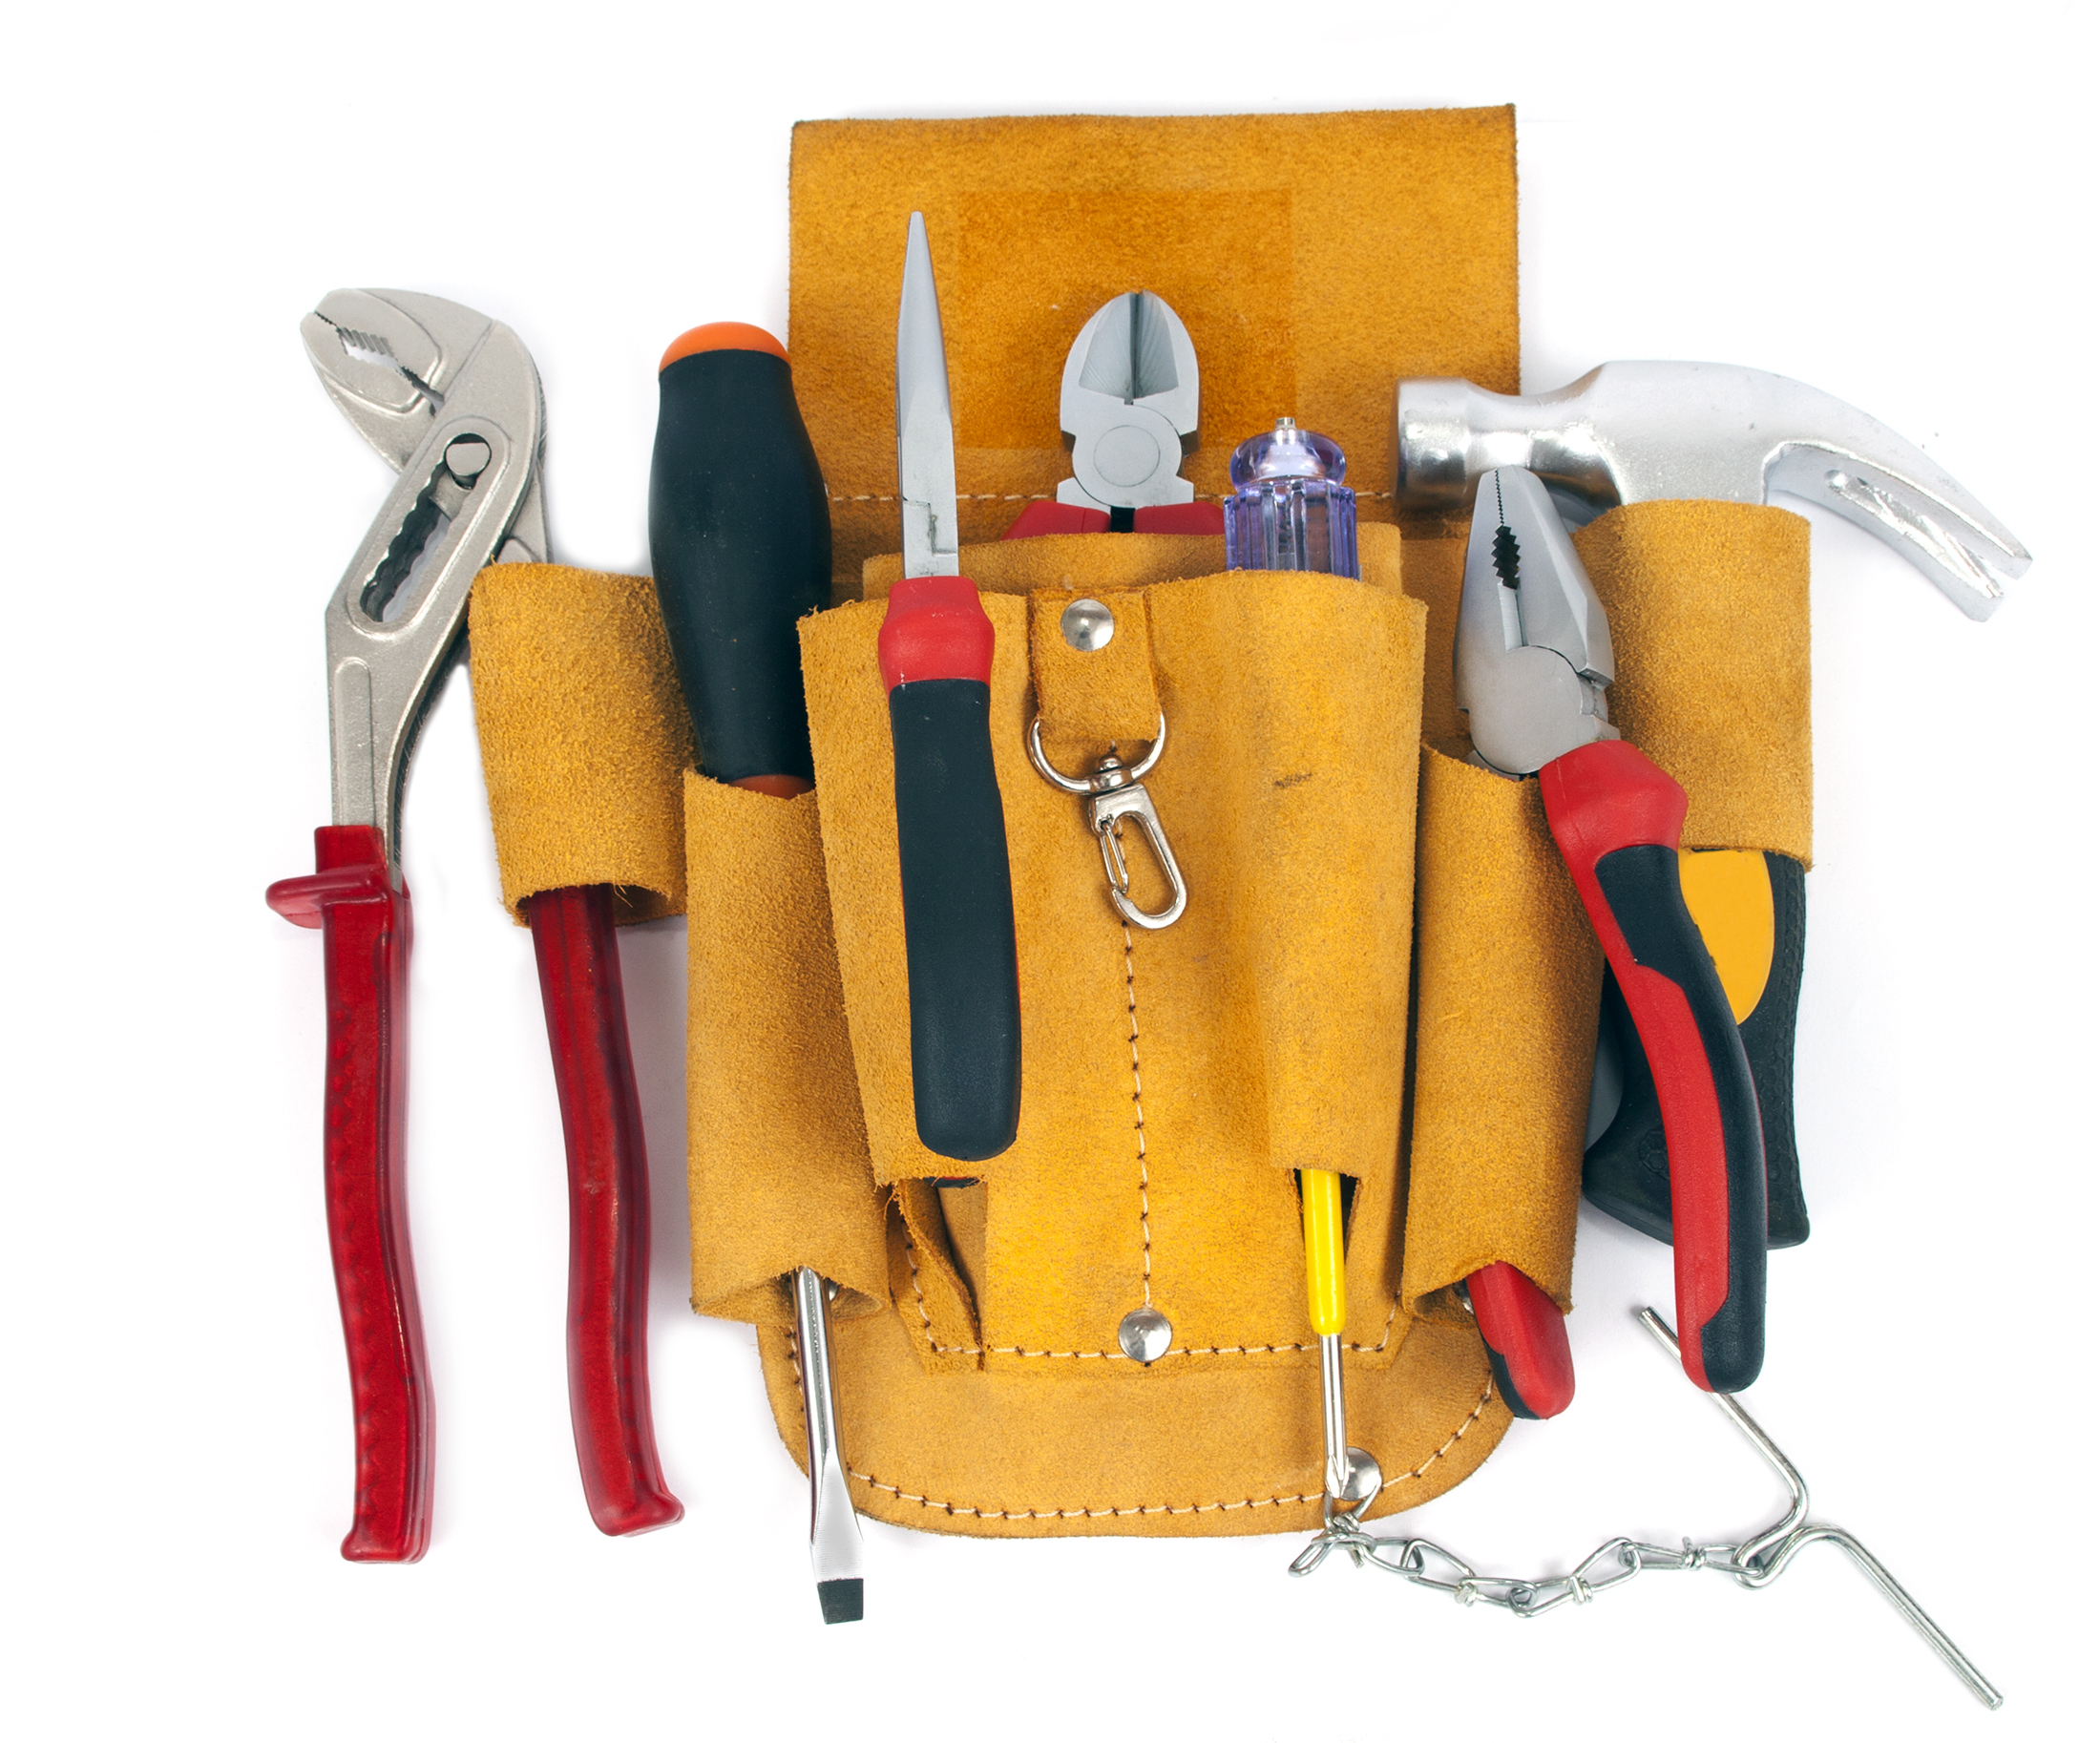 We all need more tools . . .